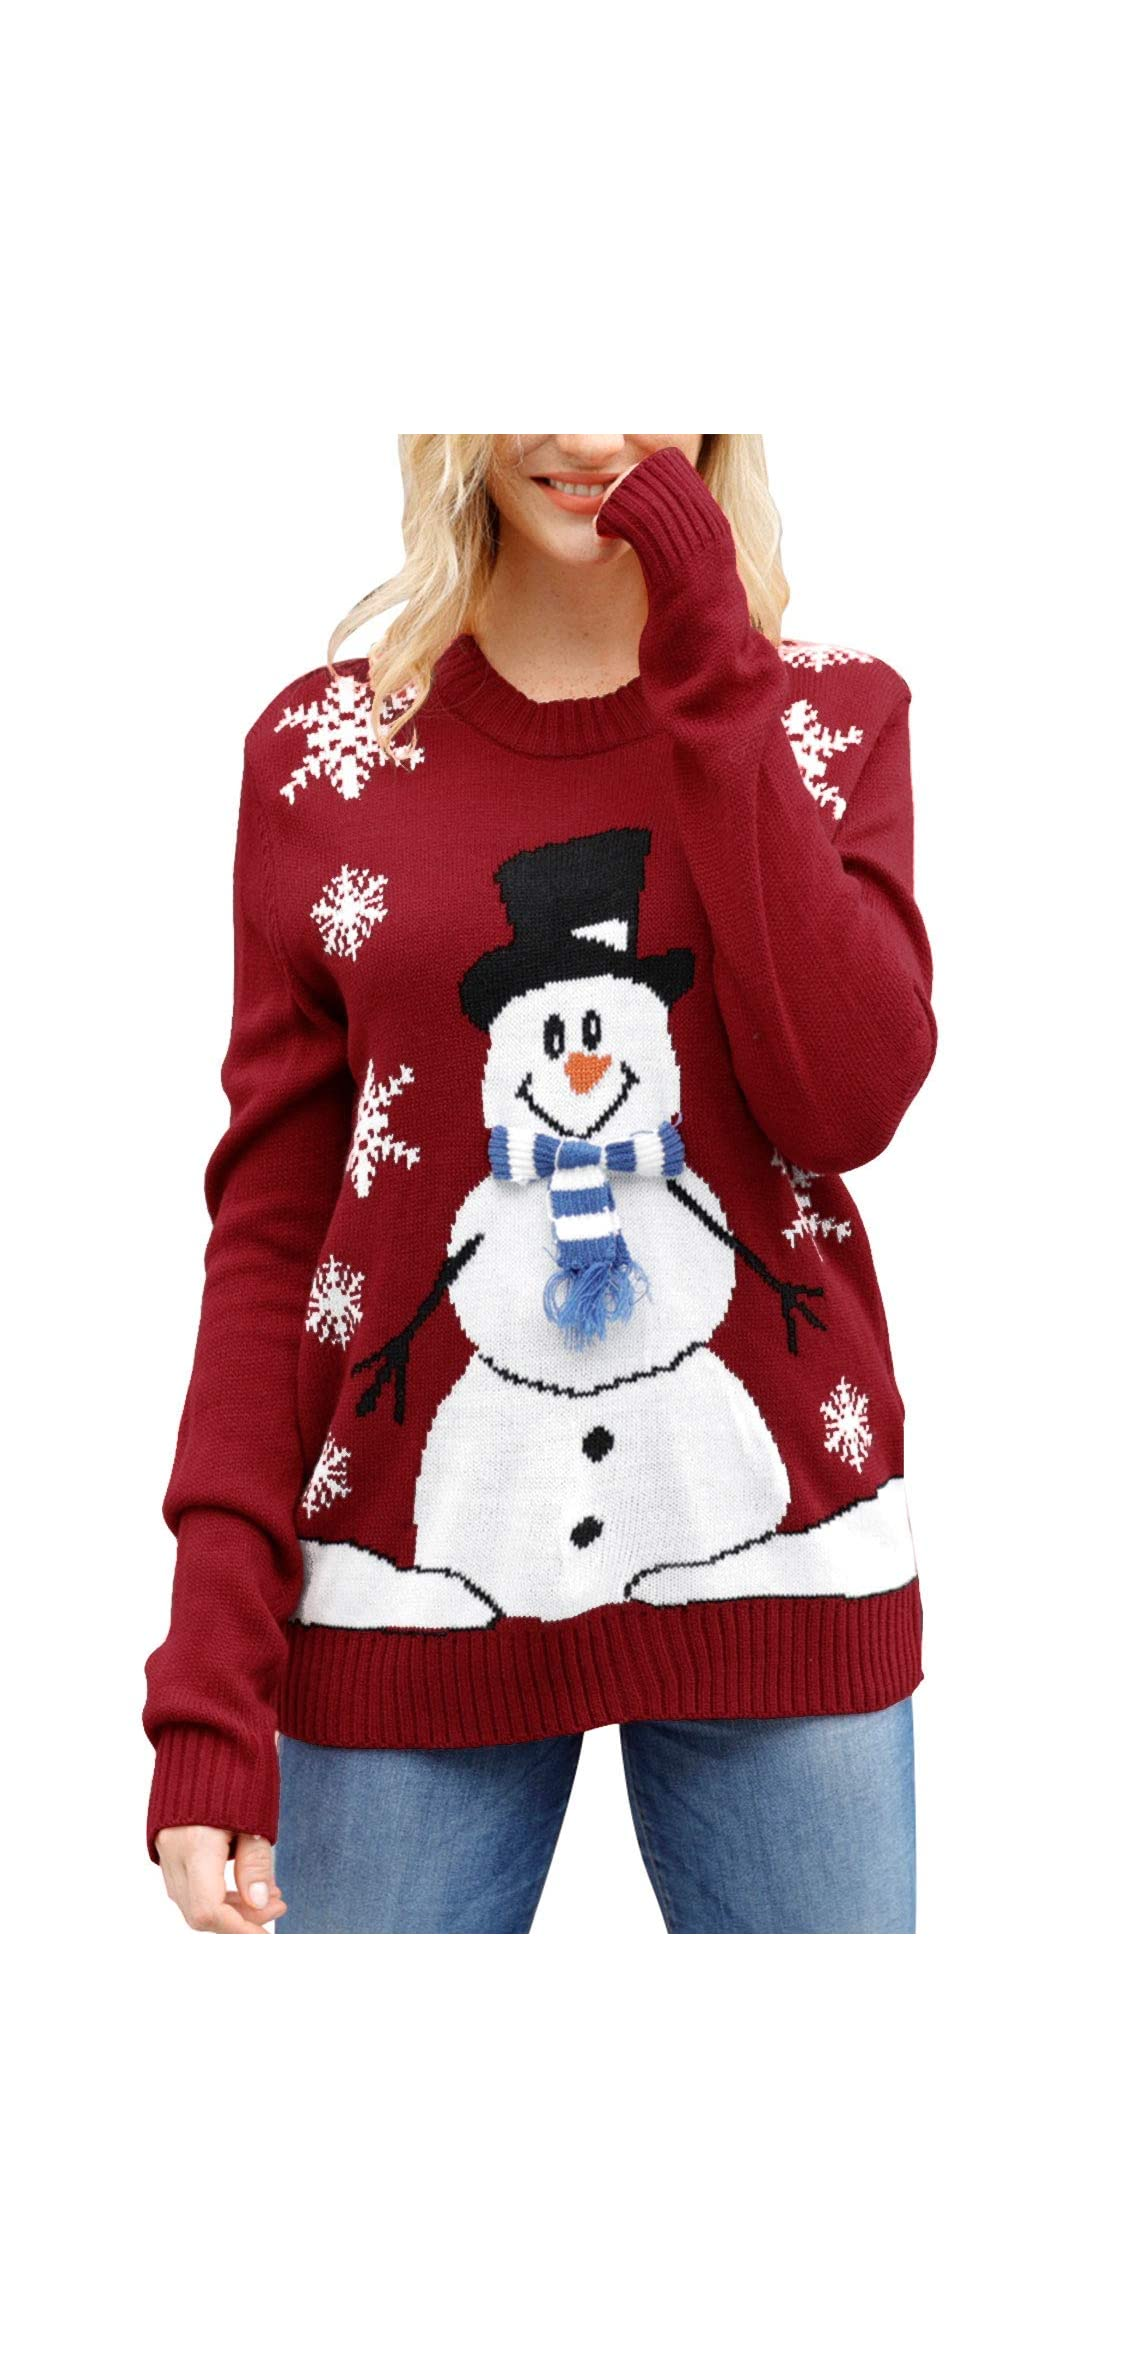 Women's Cute Funny Hilarious Ugly Christmas Sweater